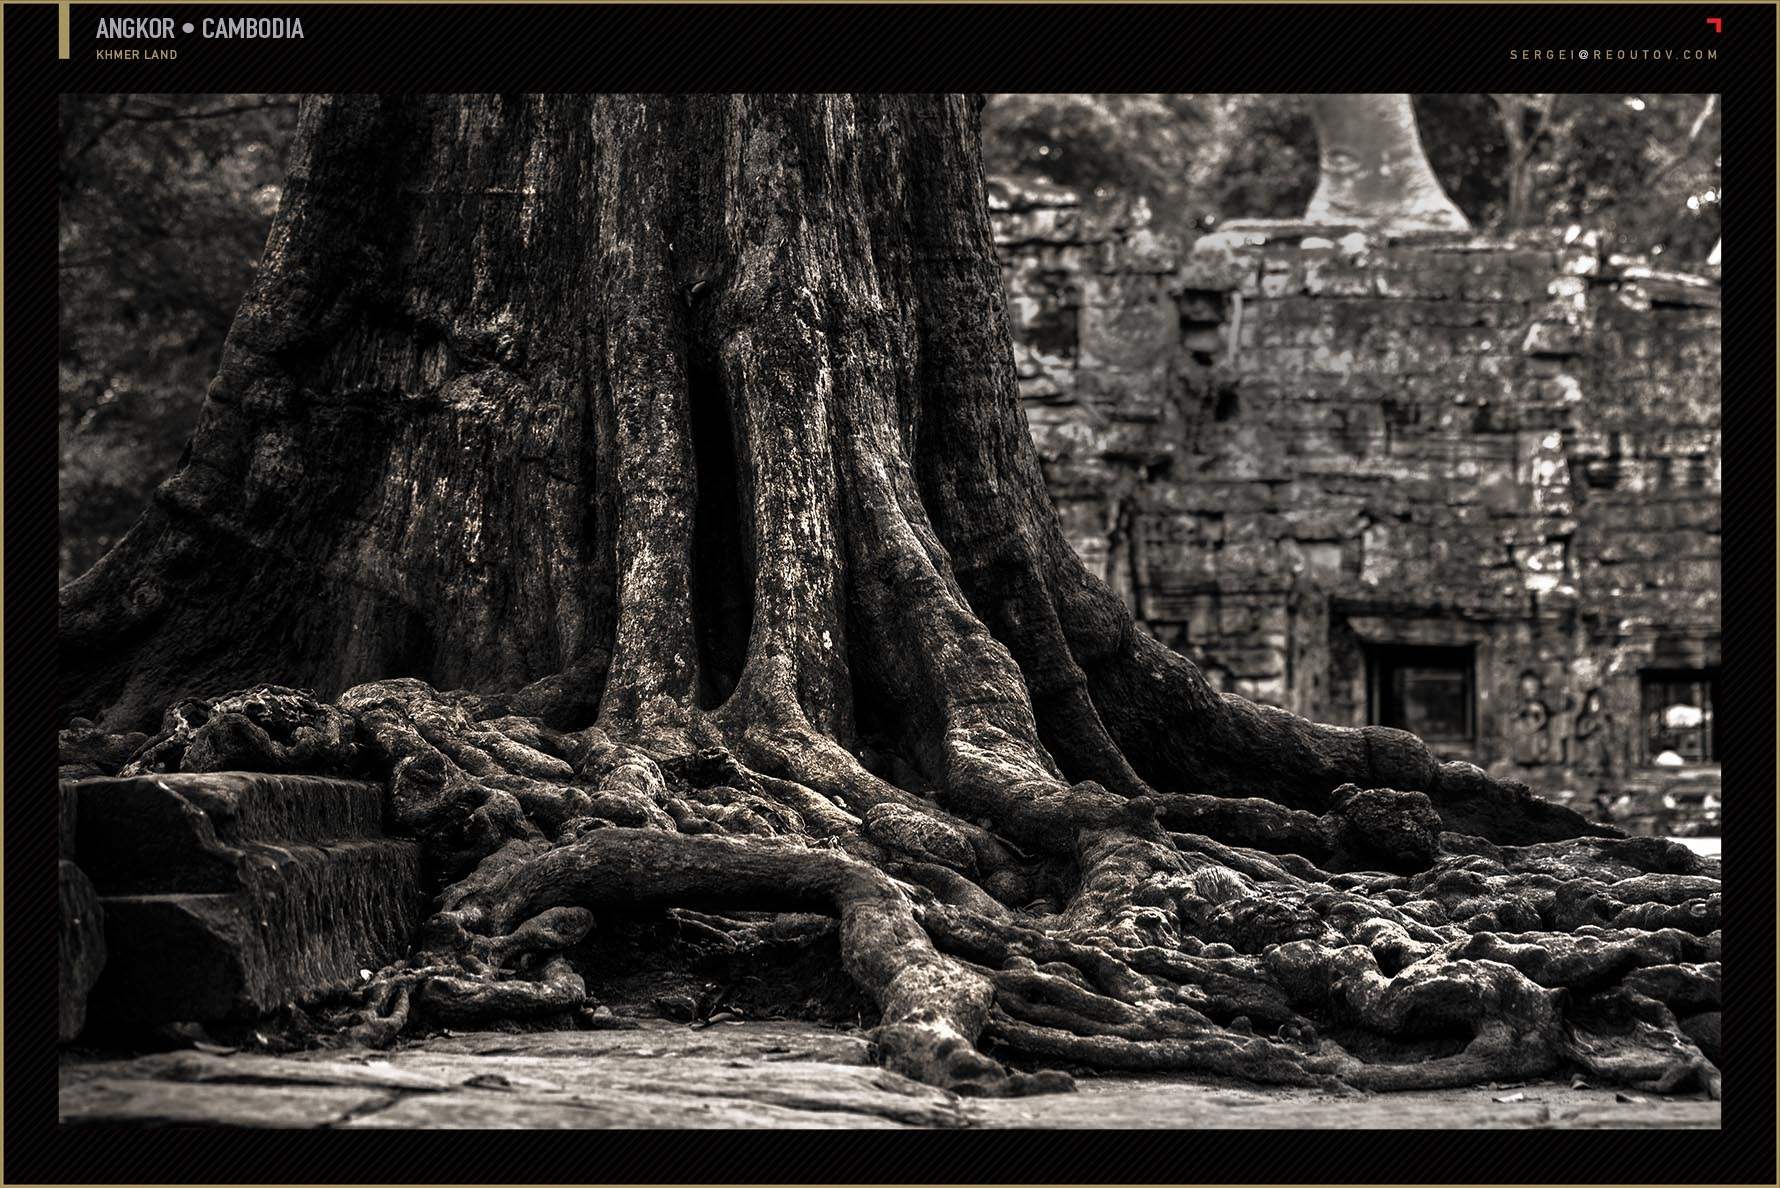 Tree with ruins in Cambodia